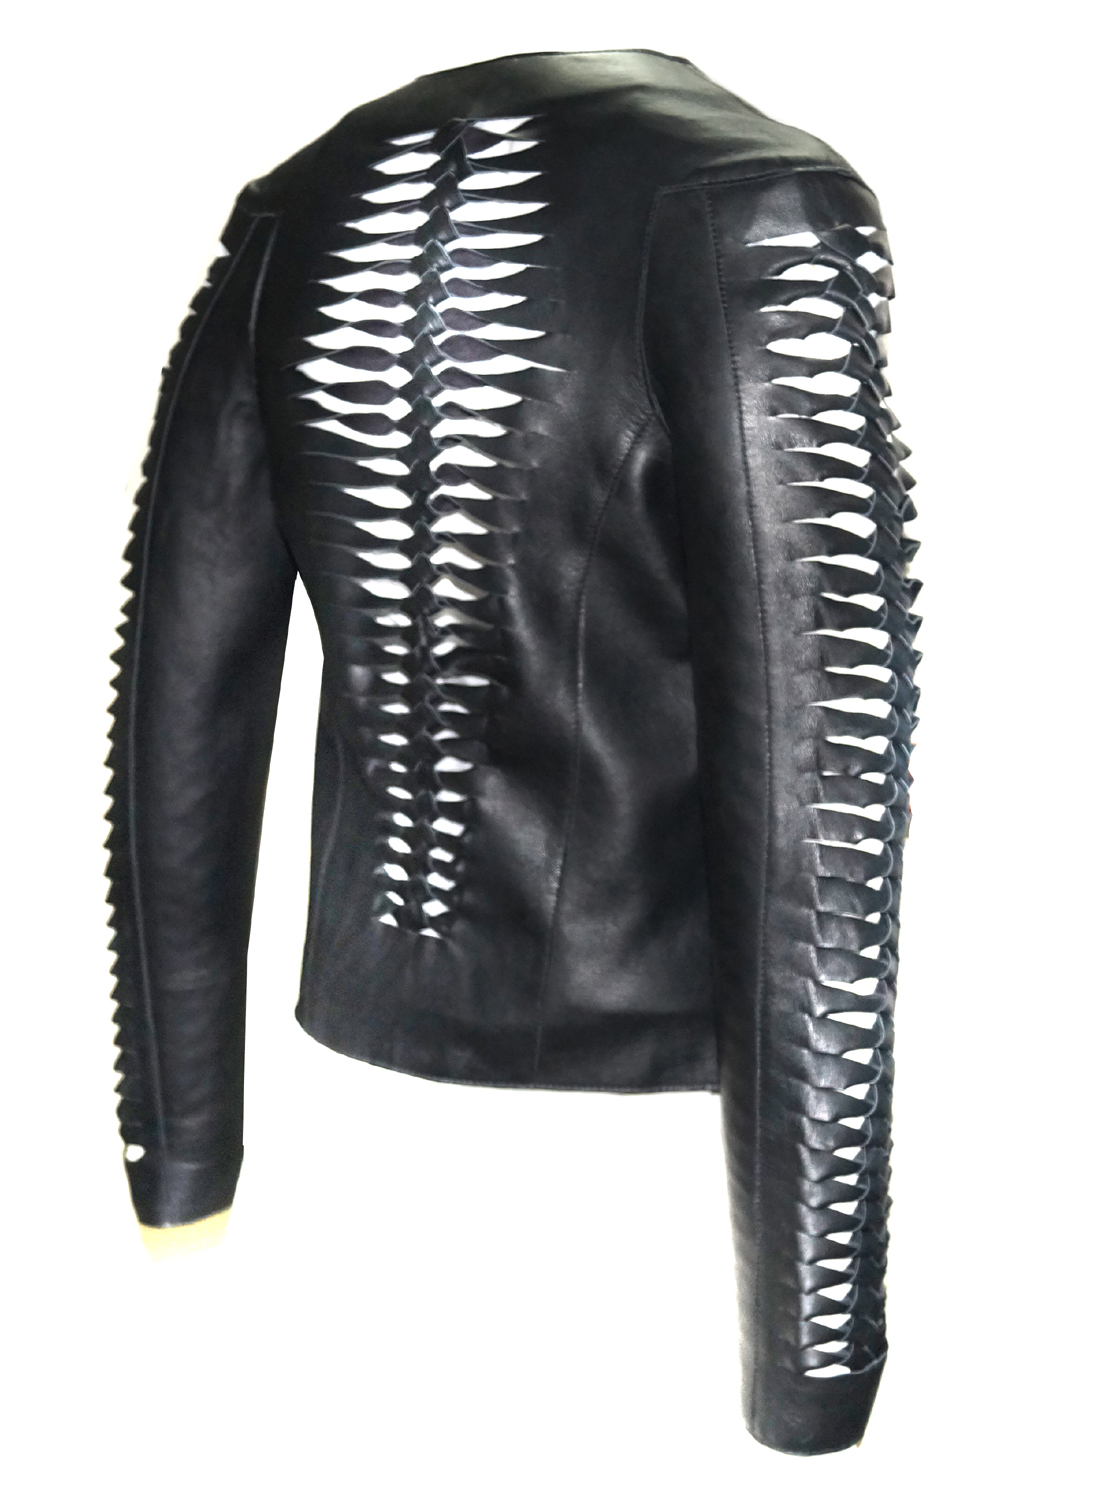 b6af96af30 HandCrafted Woven leather ladies jacket on Storenvy